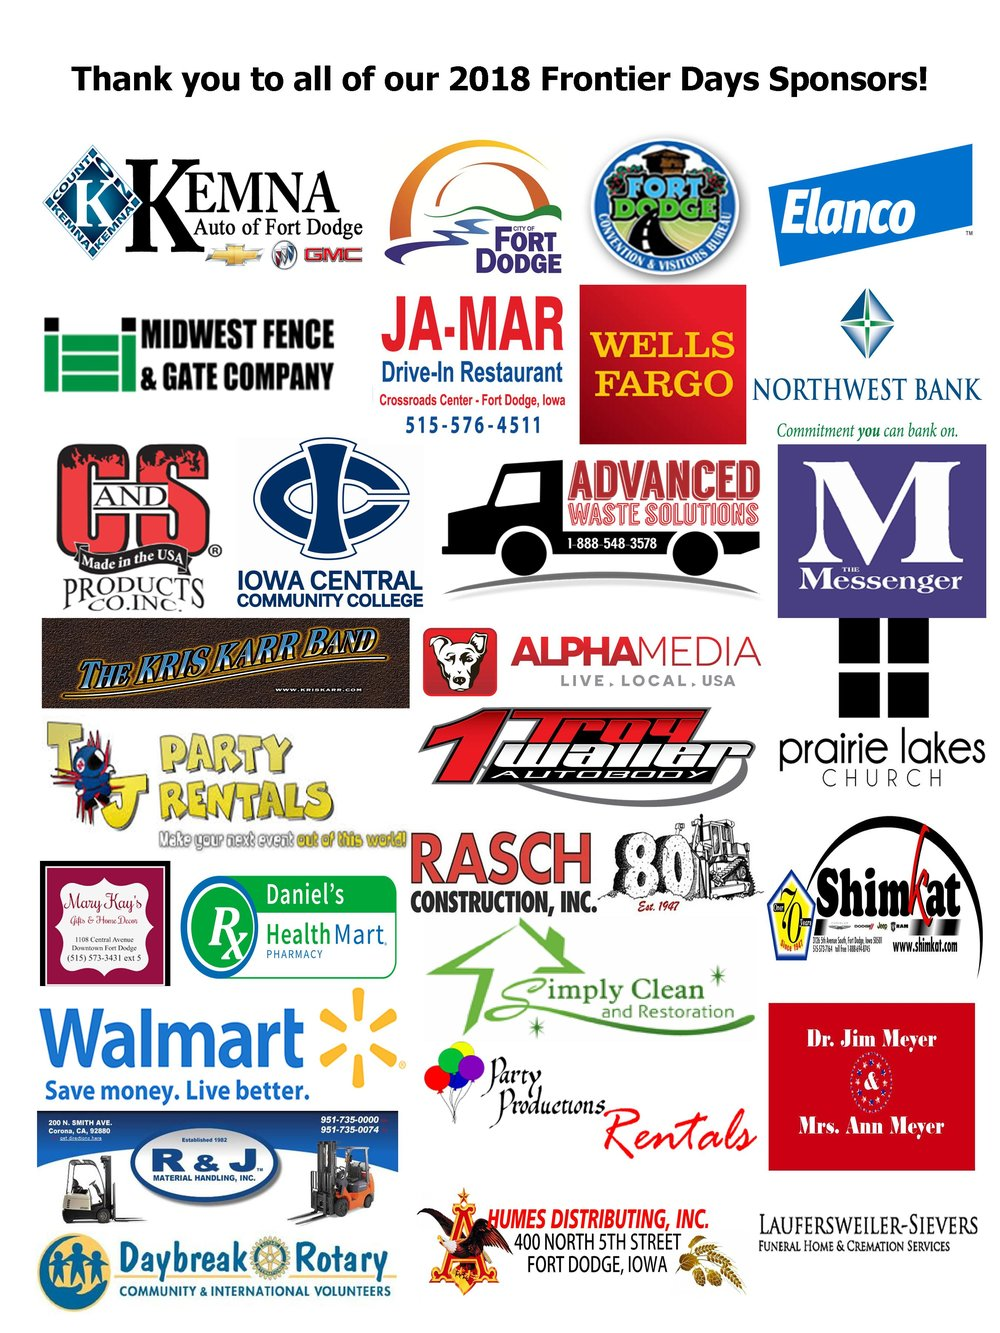 fort dodge days sponsors 2018 thank you.jpg